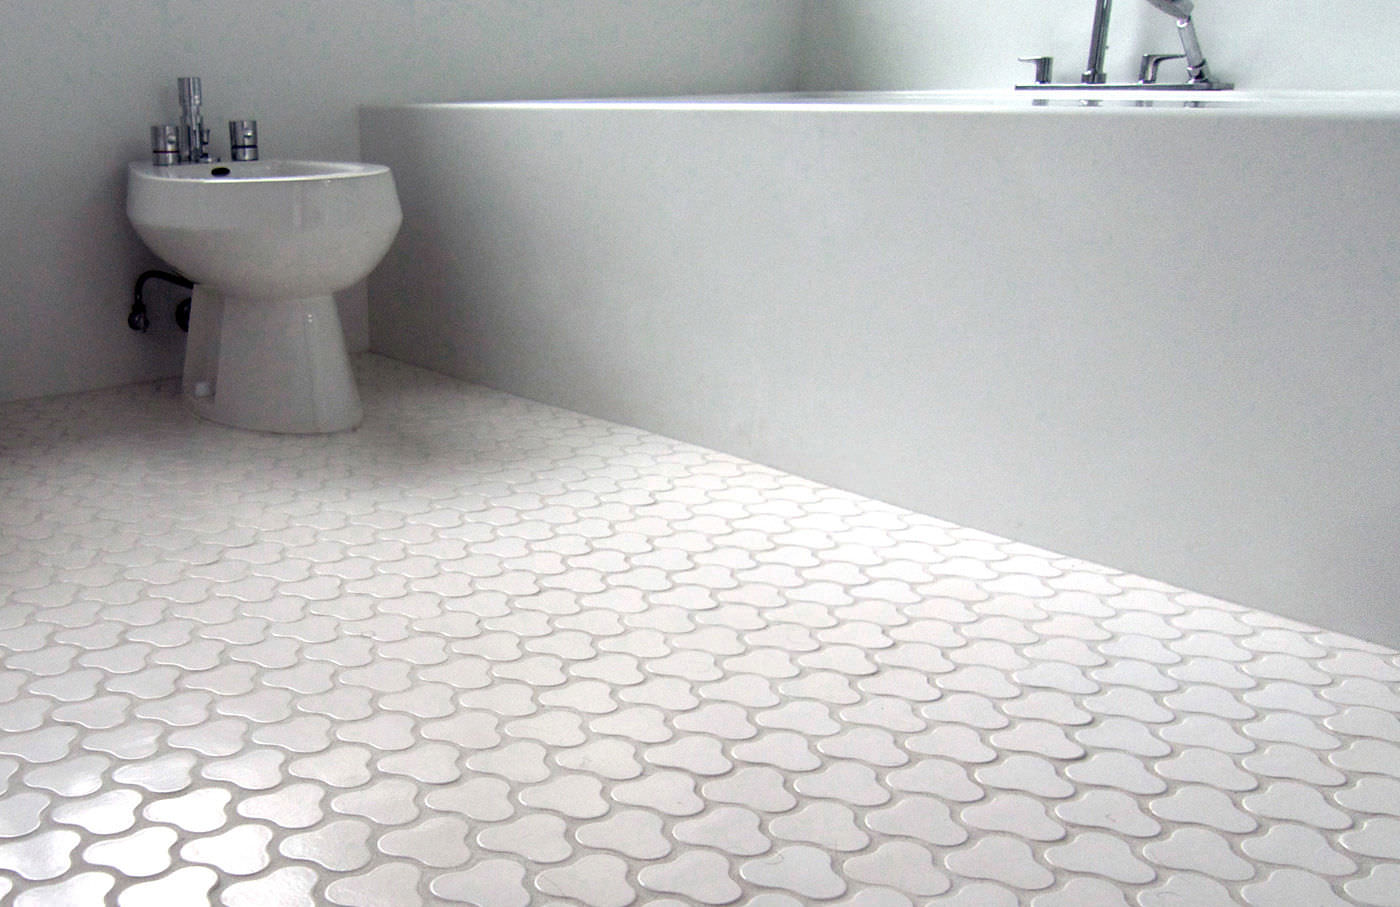 Indoor tile bathroom floor ceramic bom daniel ogassian indoor tile bathroom floor ceramic bom daniel ogassian dailygadgetfo Gallery